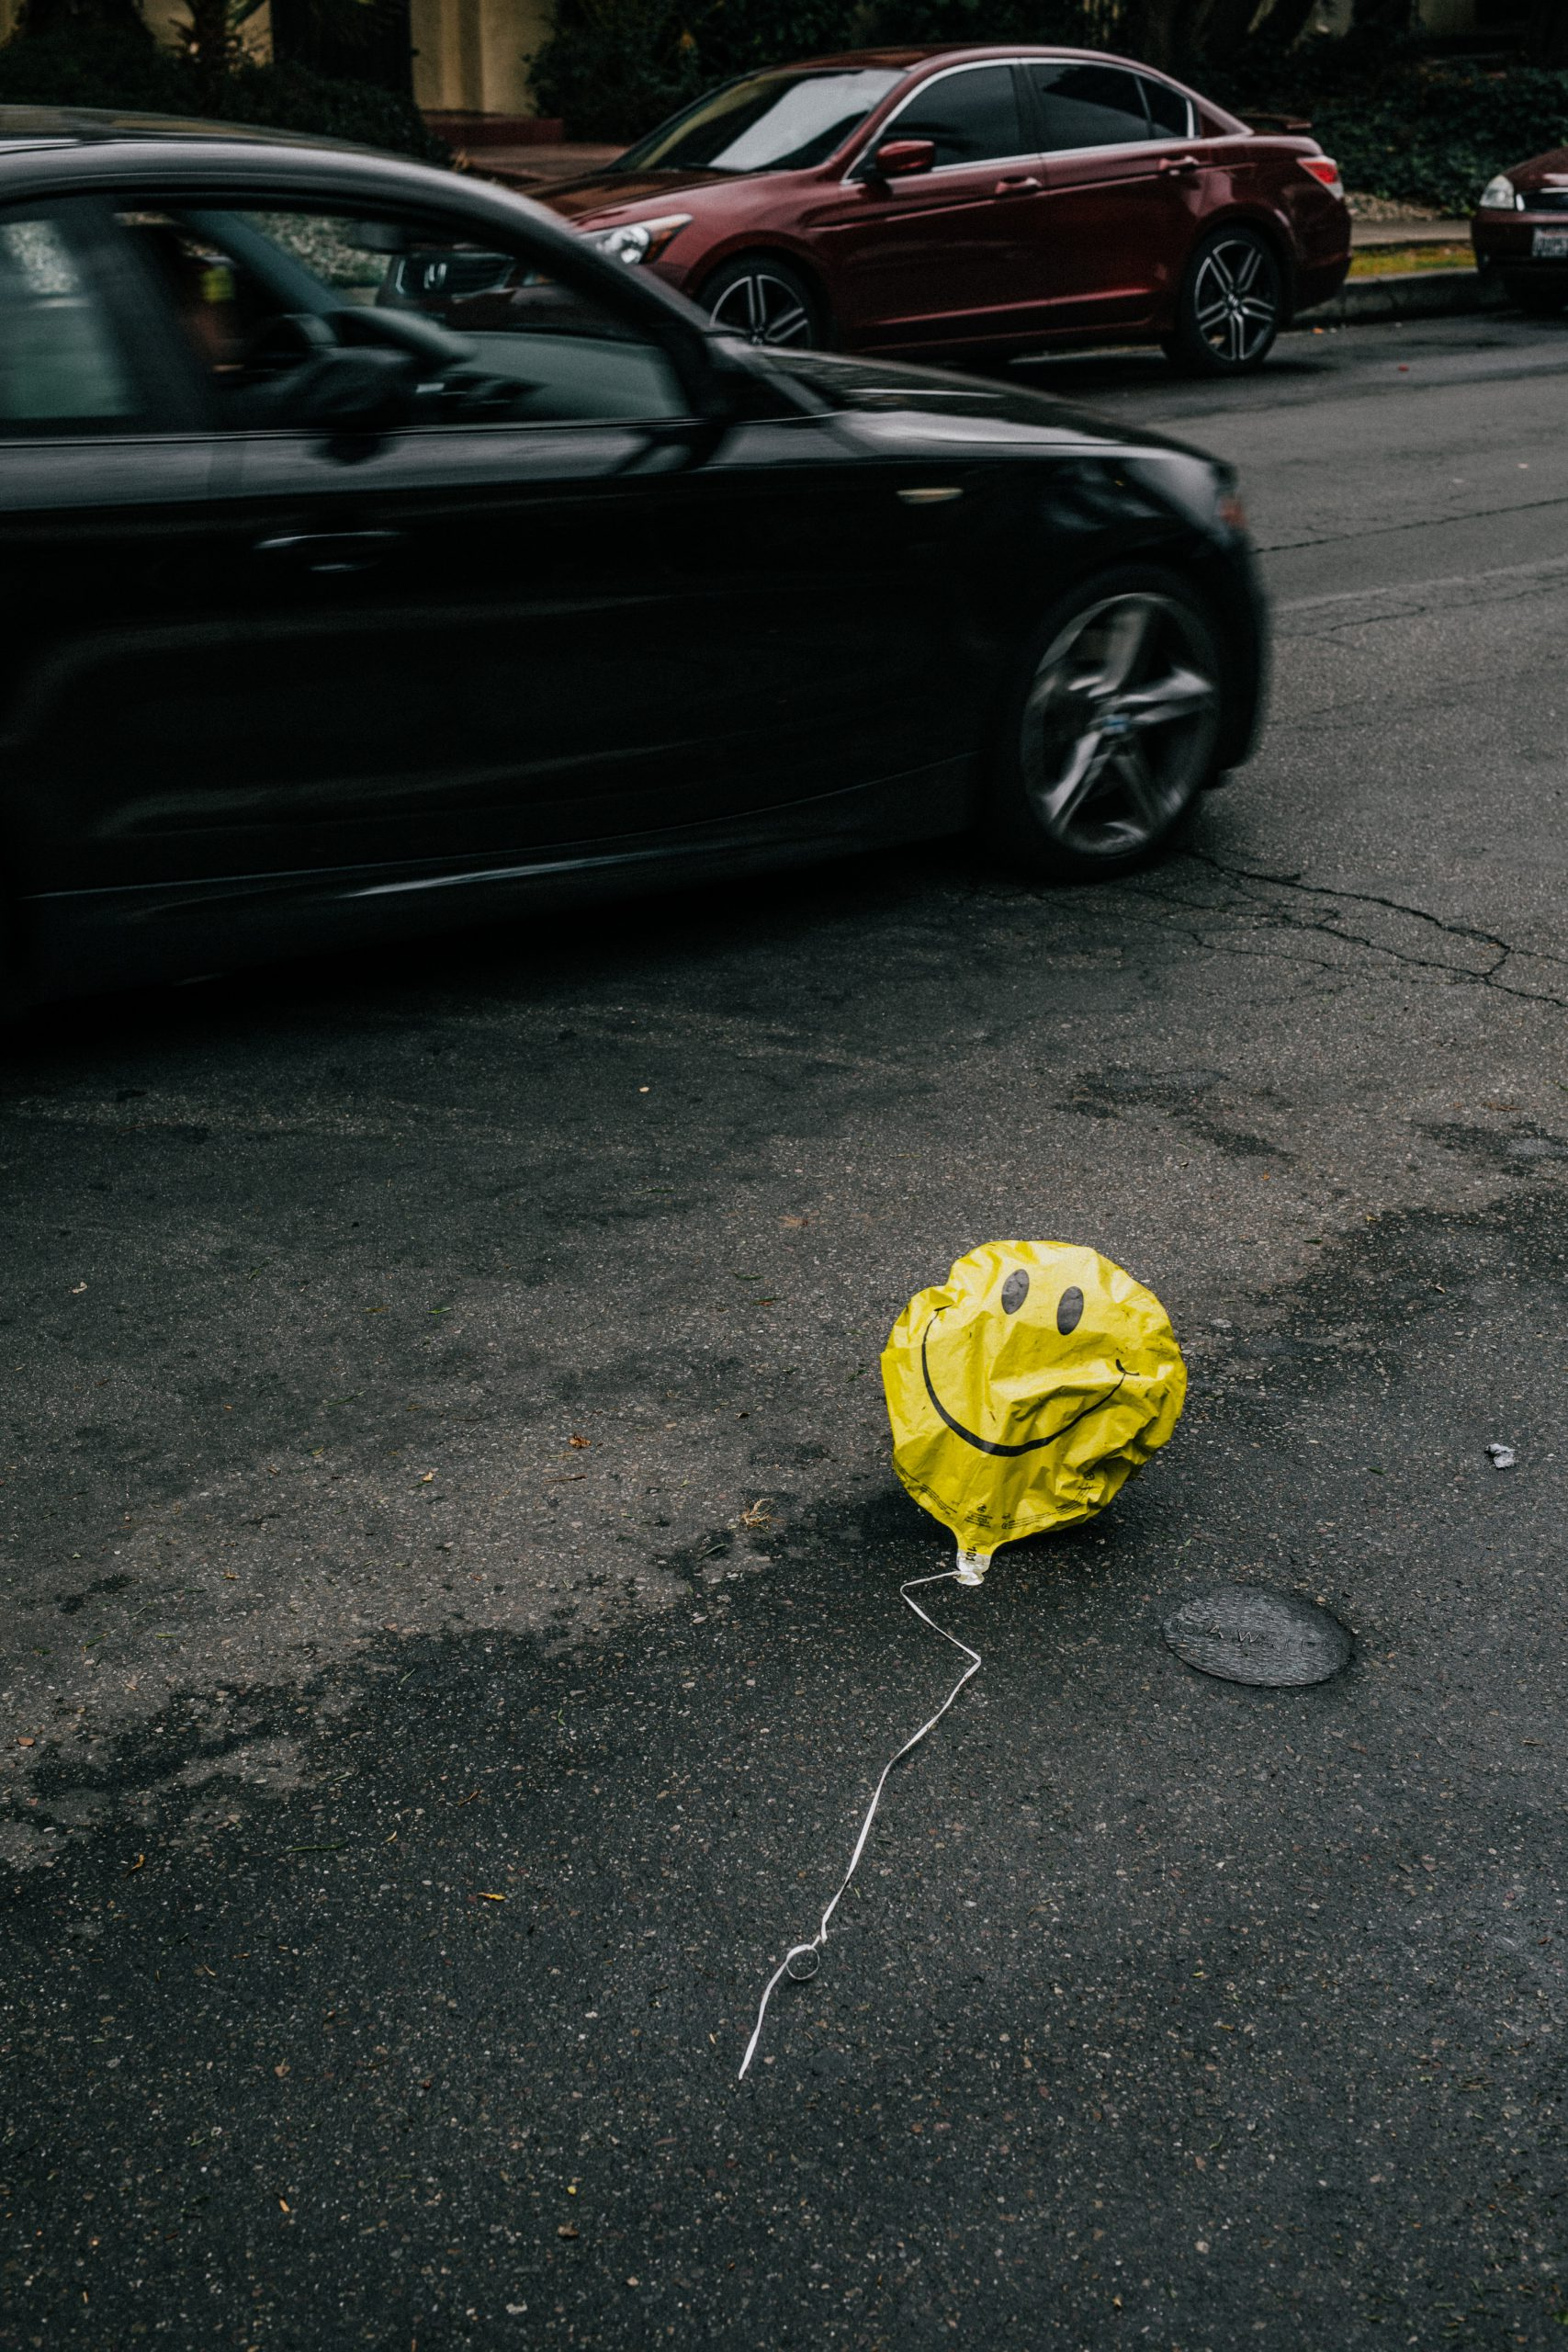 yellow smiley balloon, deflated and on the street